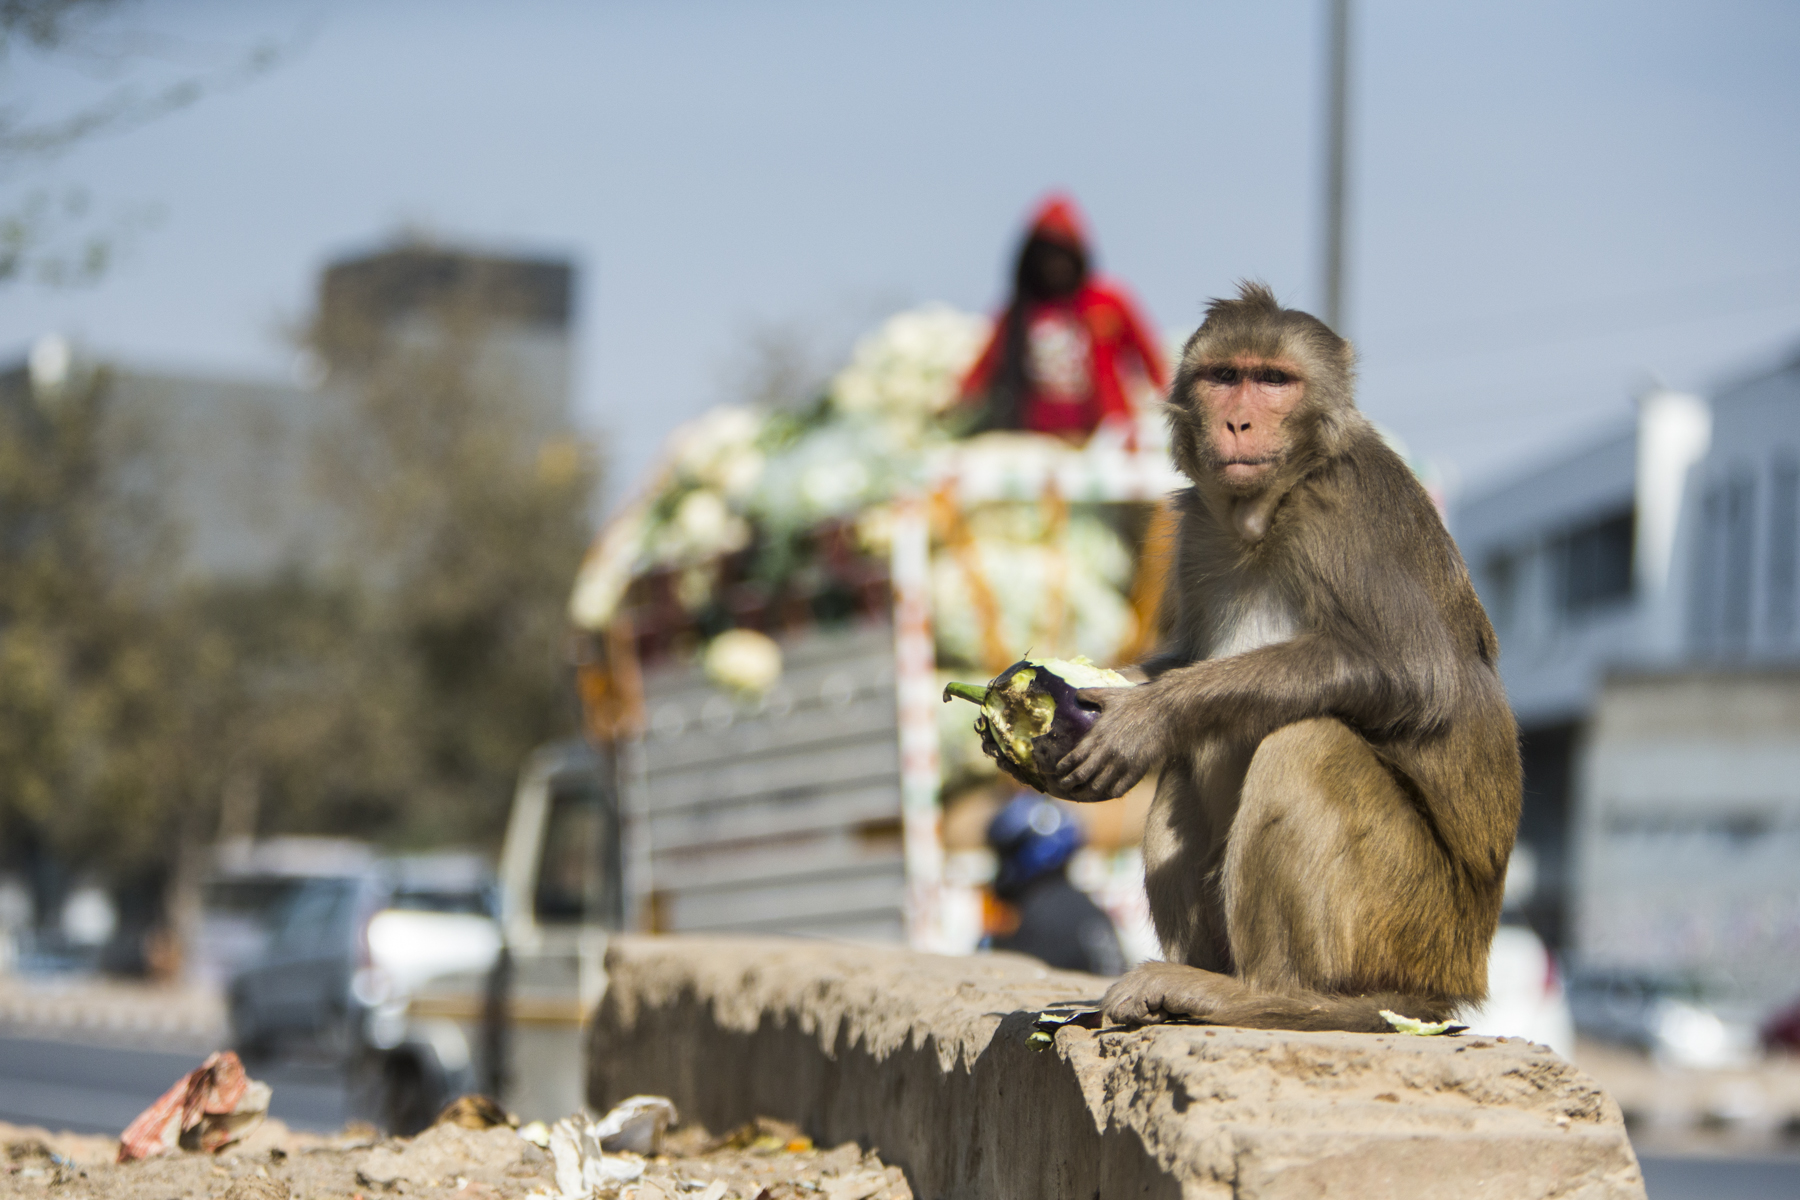 In Delhi Rhesus macaques are treated like gods, given offerings by the Hindu population due to their likeness to the Hindu god Hanuman.